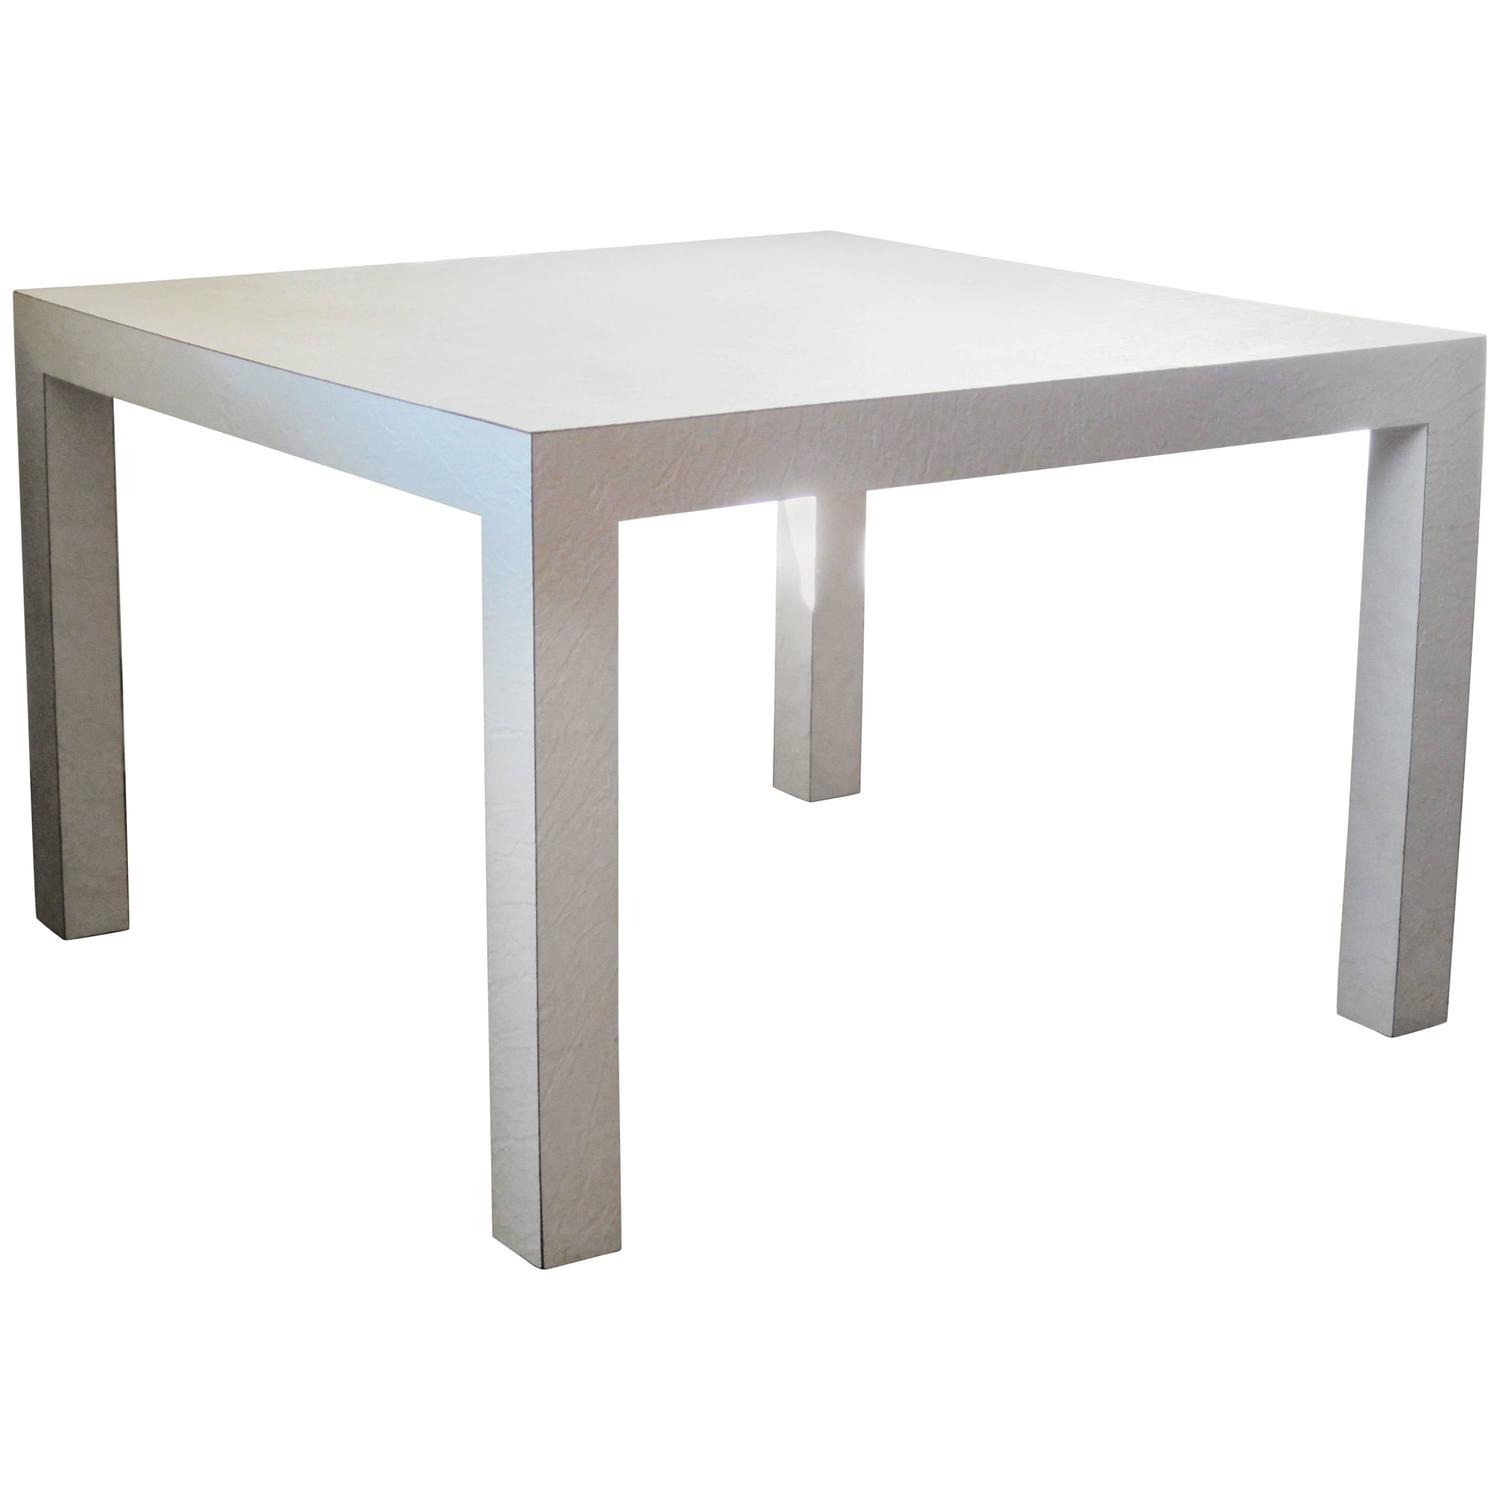 white glass side table probably terrific best the parsons tables for end with drawer textured laminate covered litter tray high quality lamps outdoor umbrella stand patio bar sets